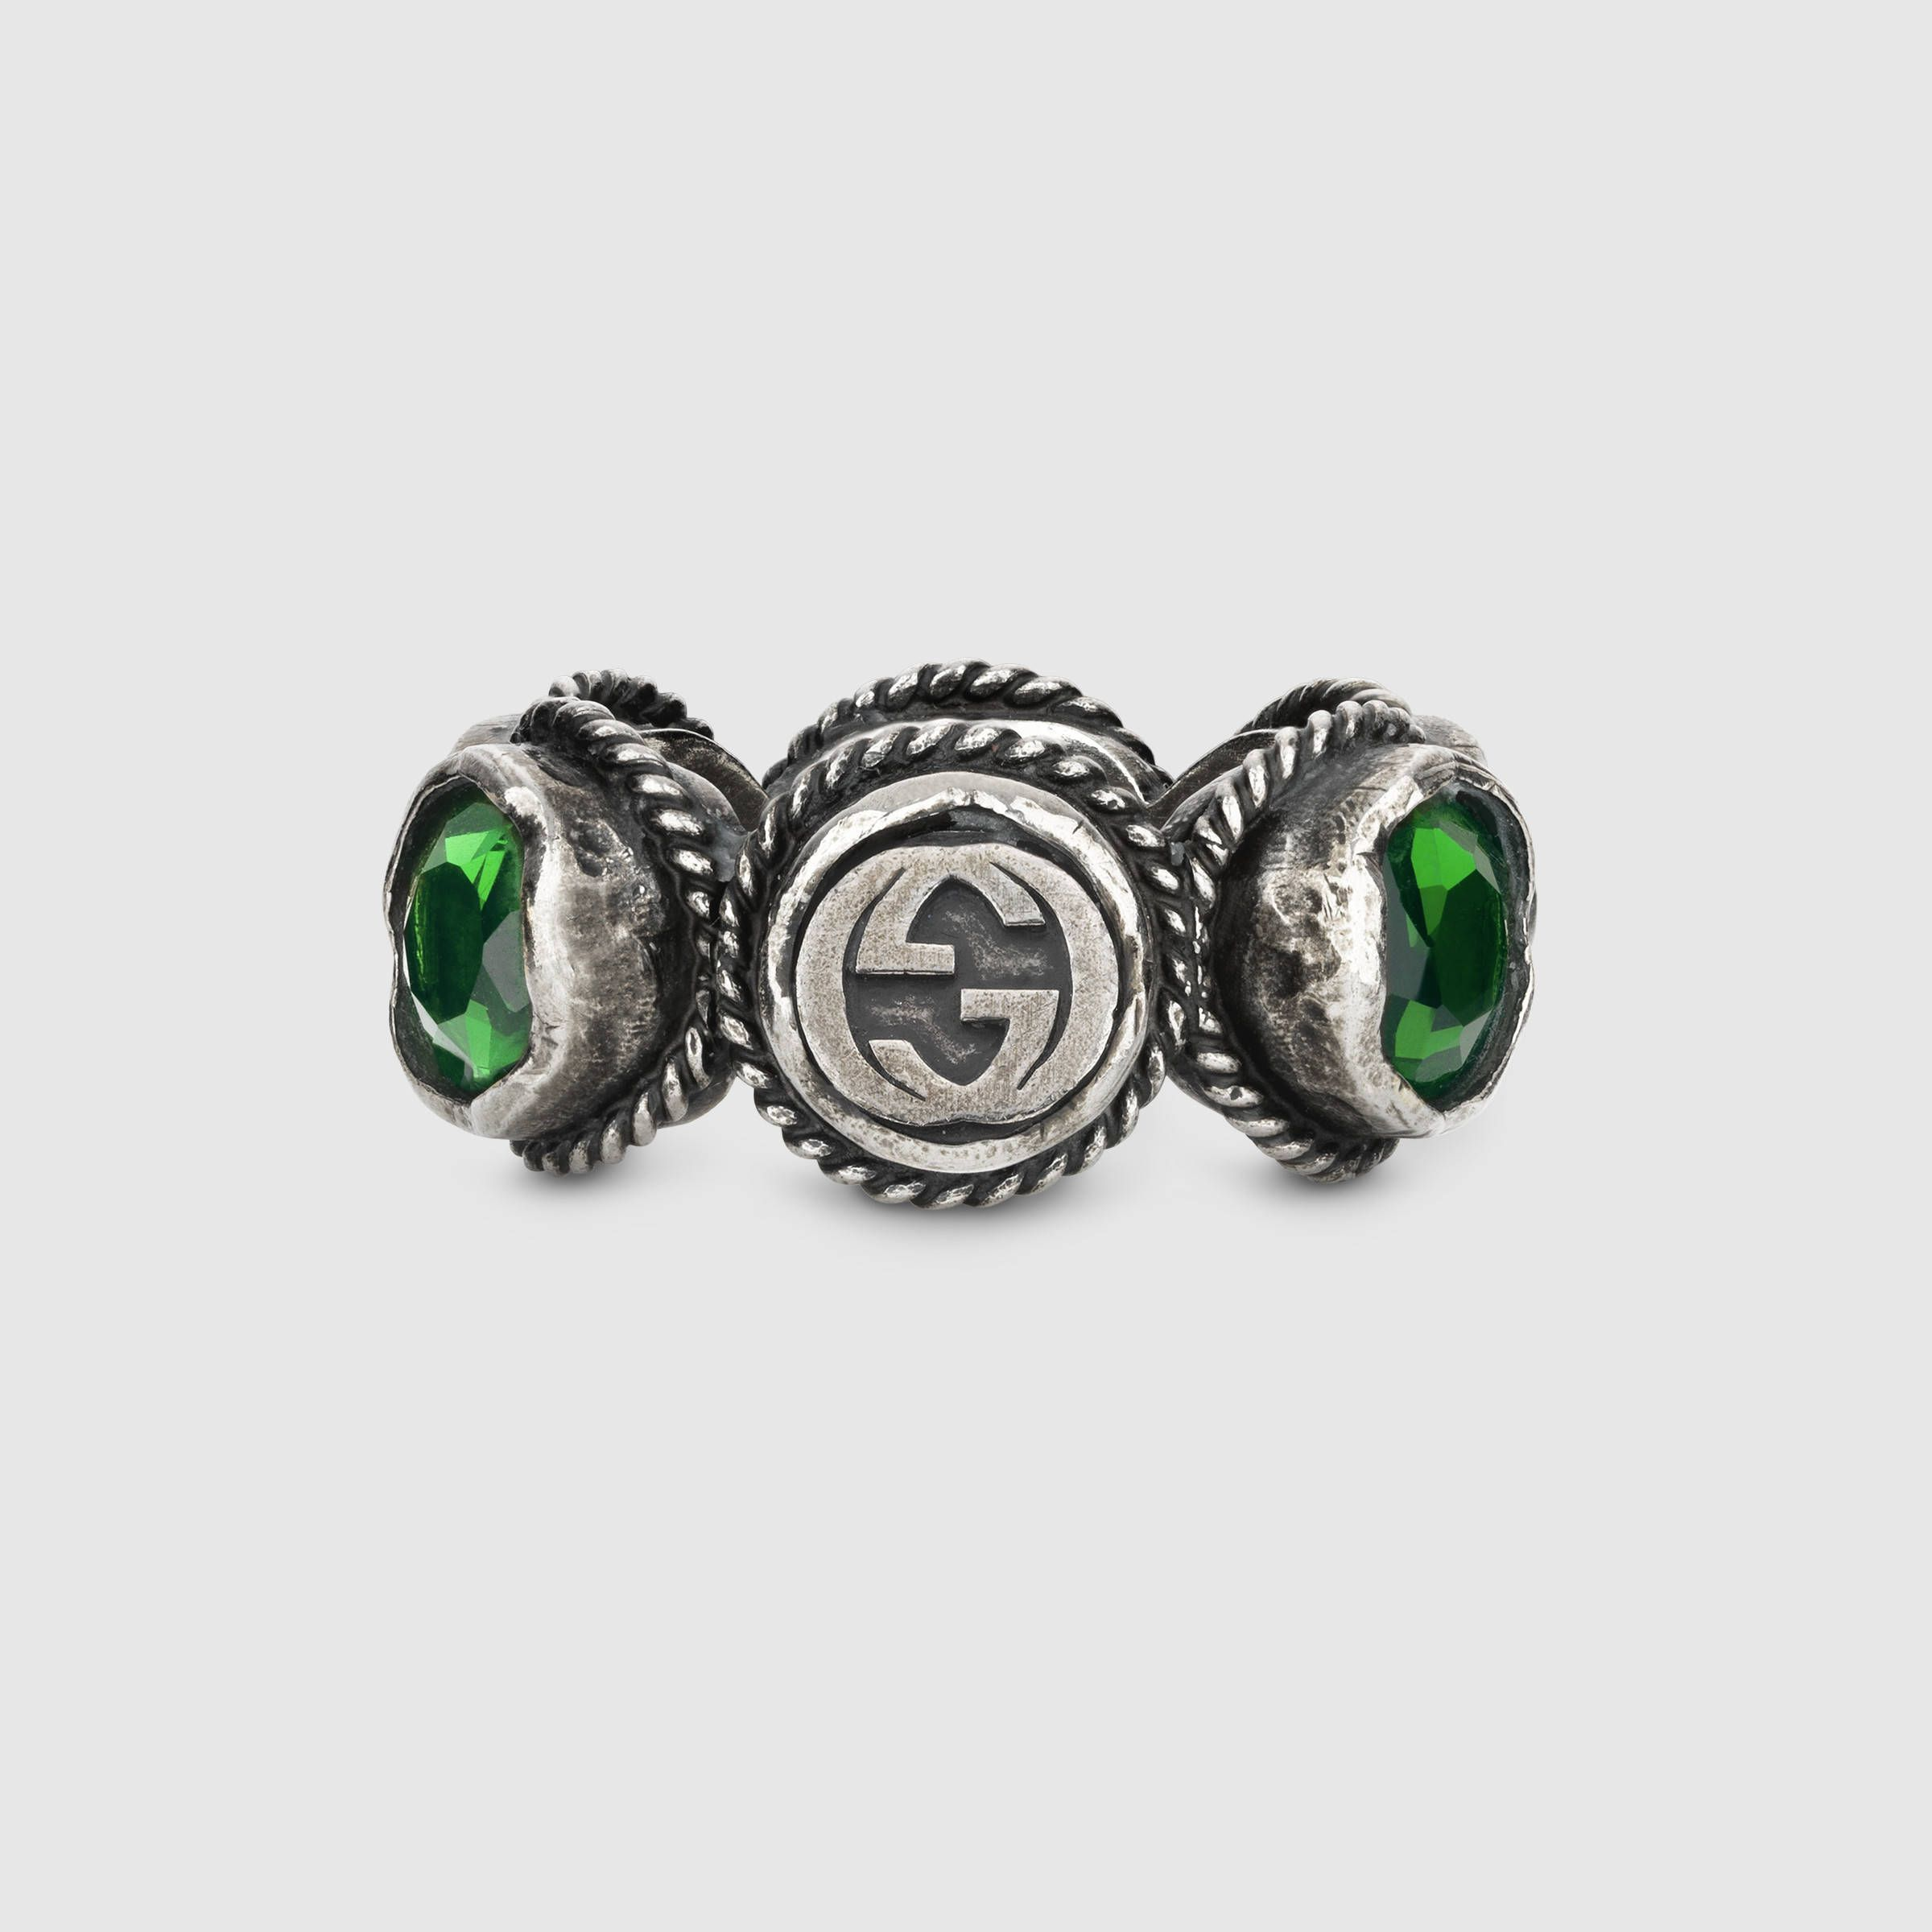 e09ea18c17 Jewelry & Watches   gifts   Jewelry, Fashion rings, Rings for men